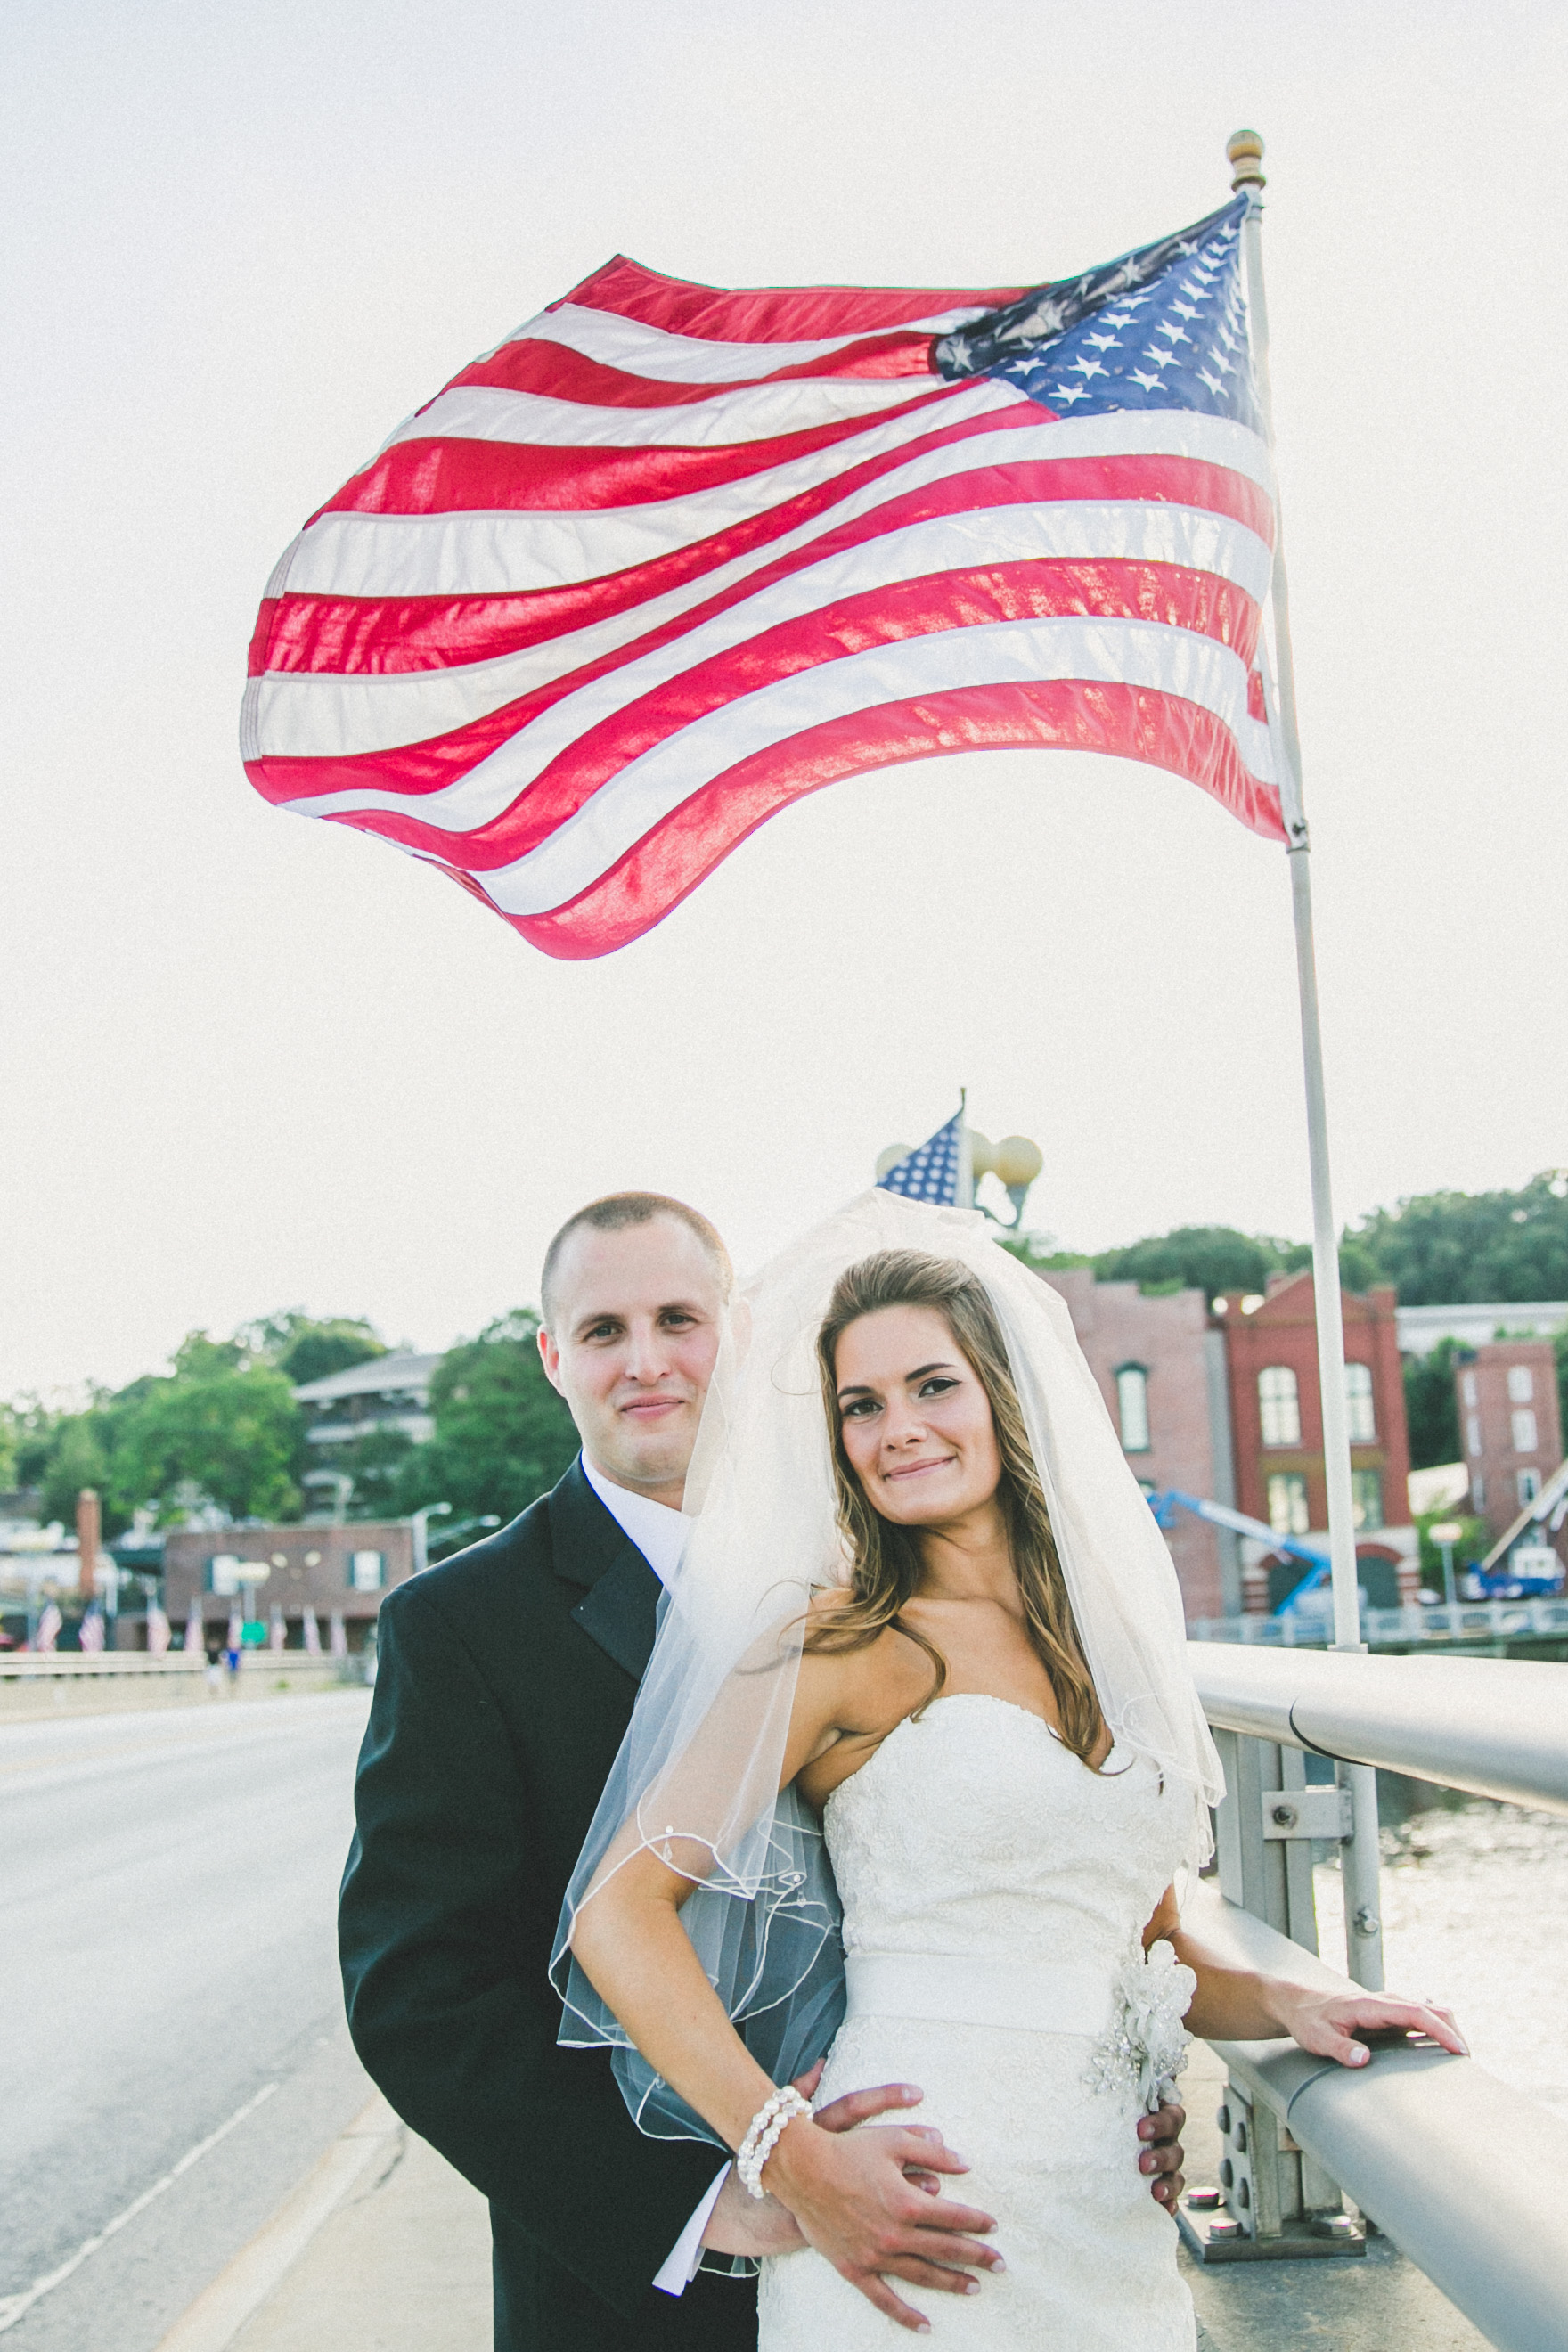 American-Wedding-Westport-Connecticut-The-Inn-at-Longshore-Photojournalistic-Wedding-Photography-by-Jacek-Dolata-6.jpg